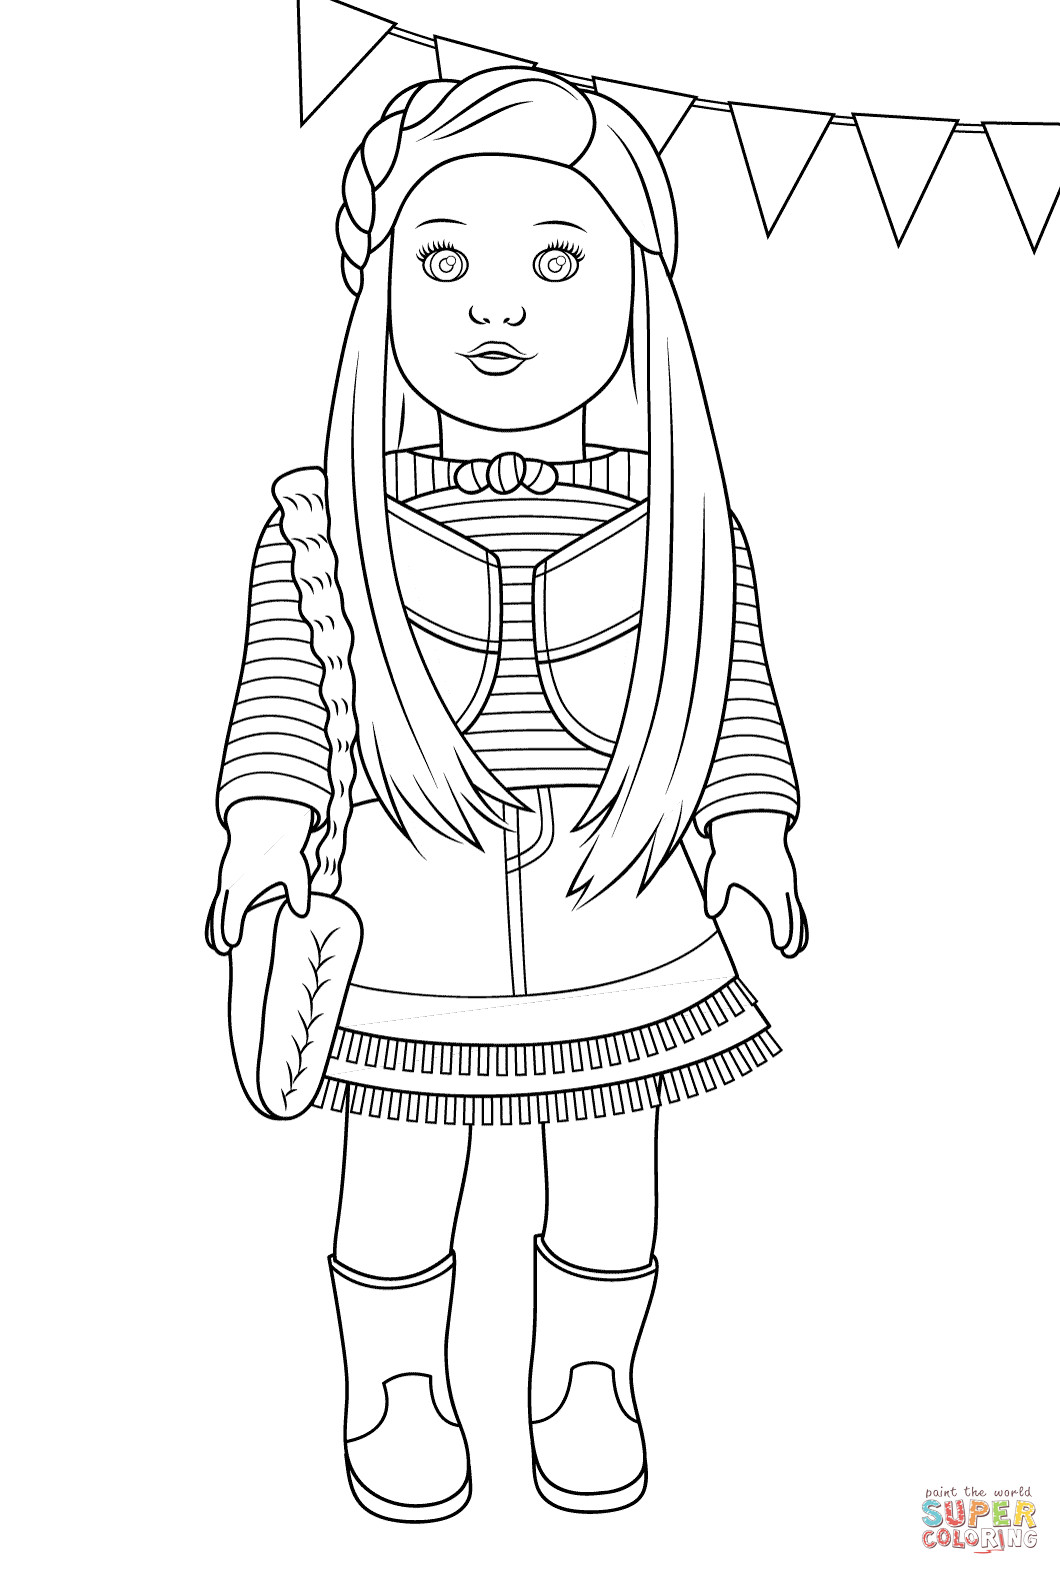 American Girl Lea Coloring Pages  American Girl Mckenna coloring page